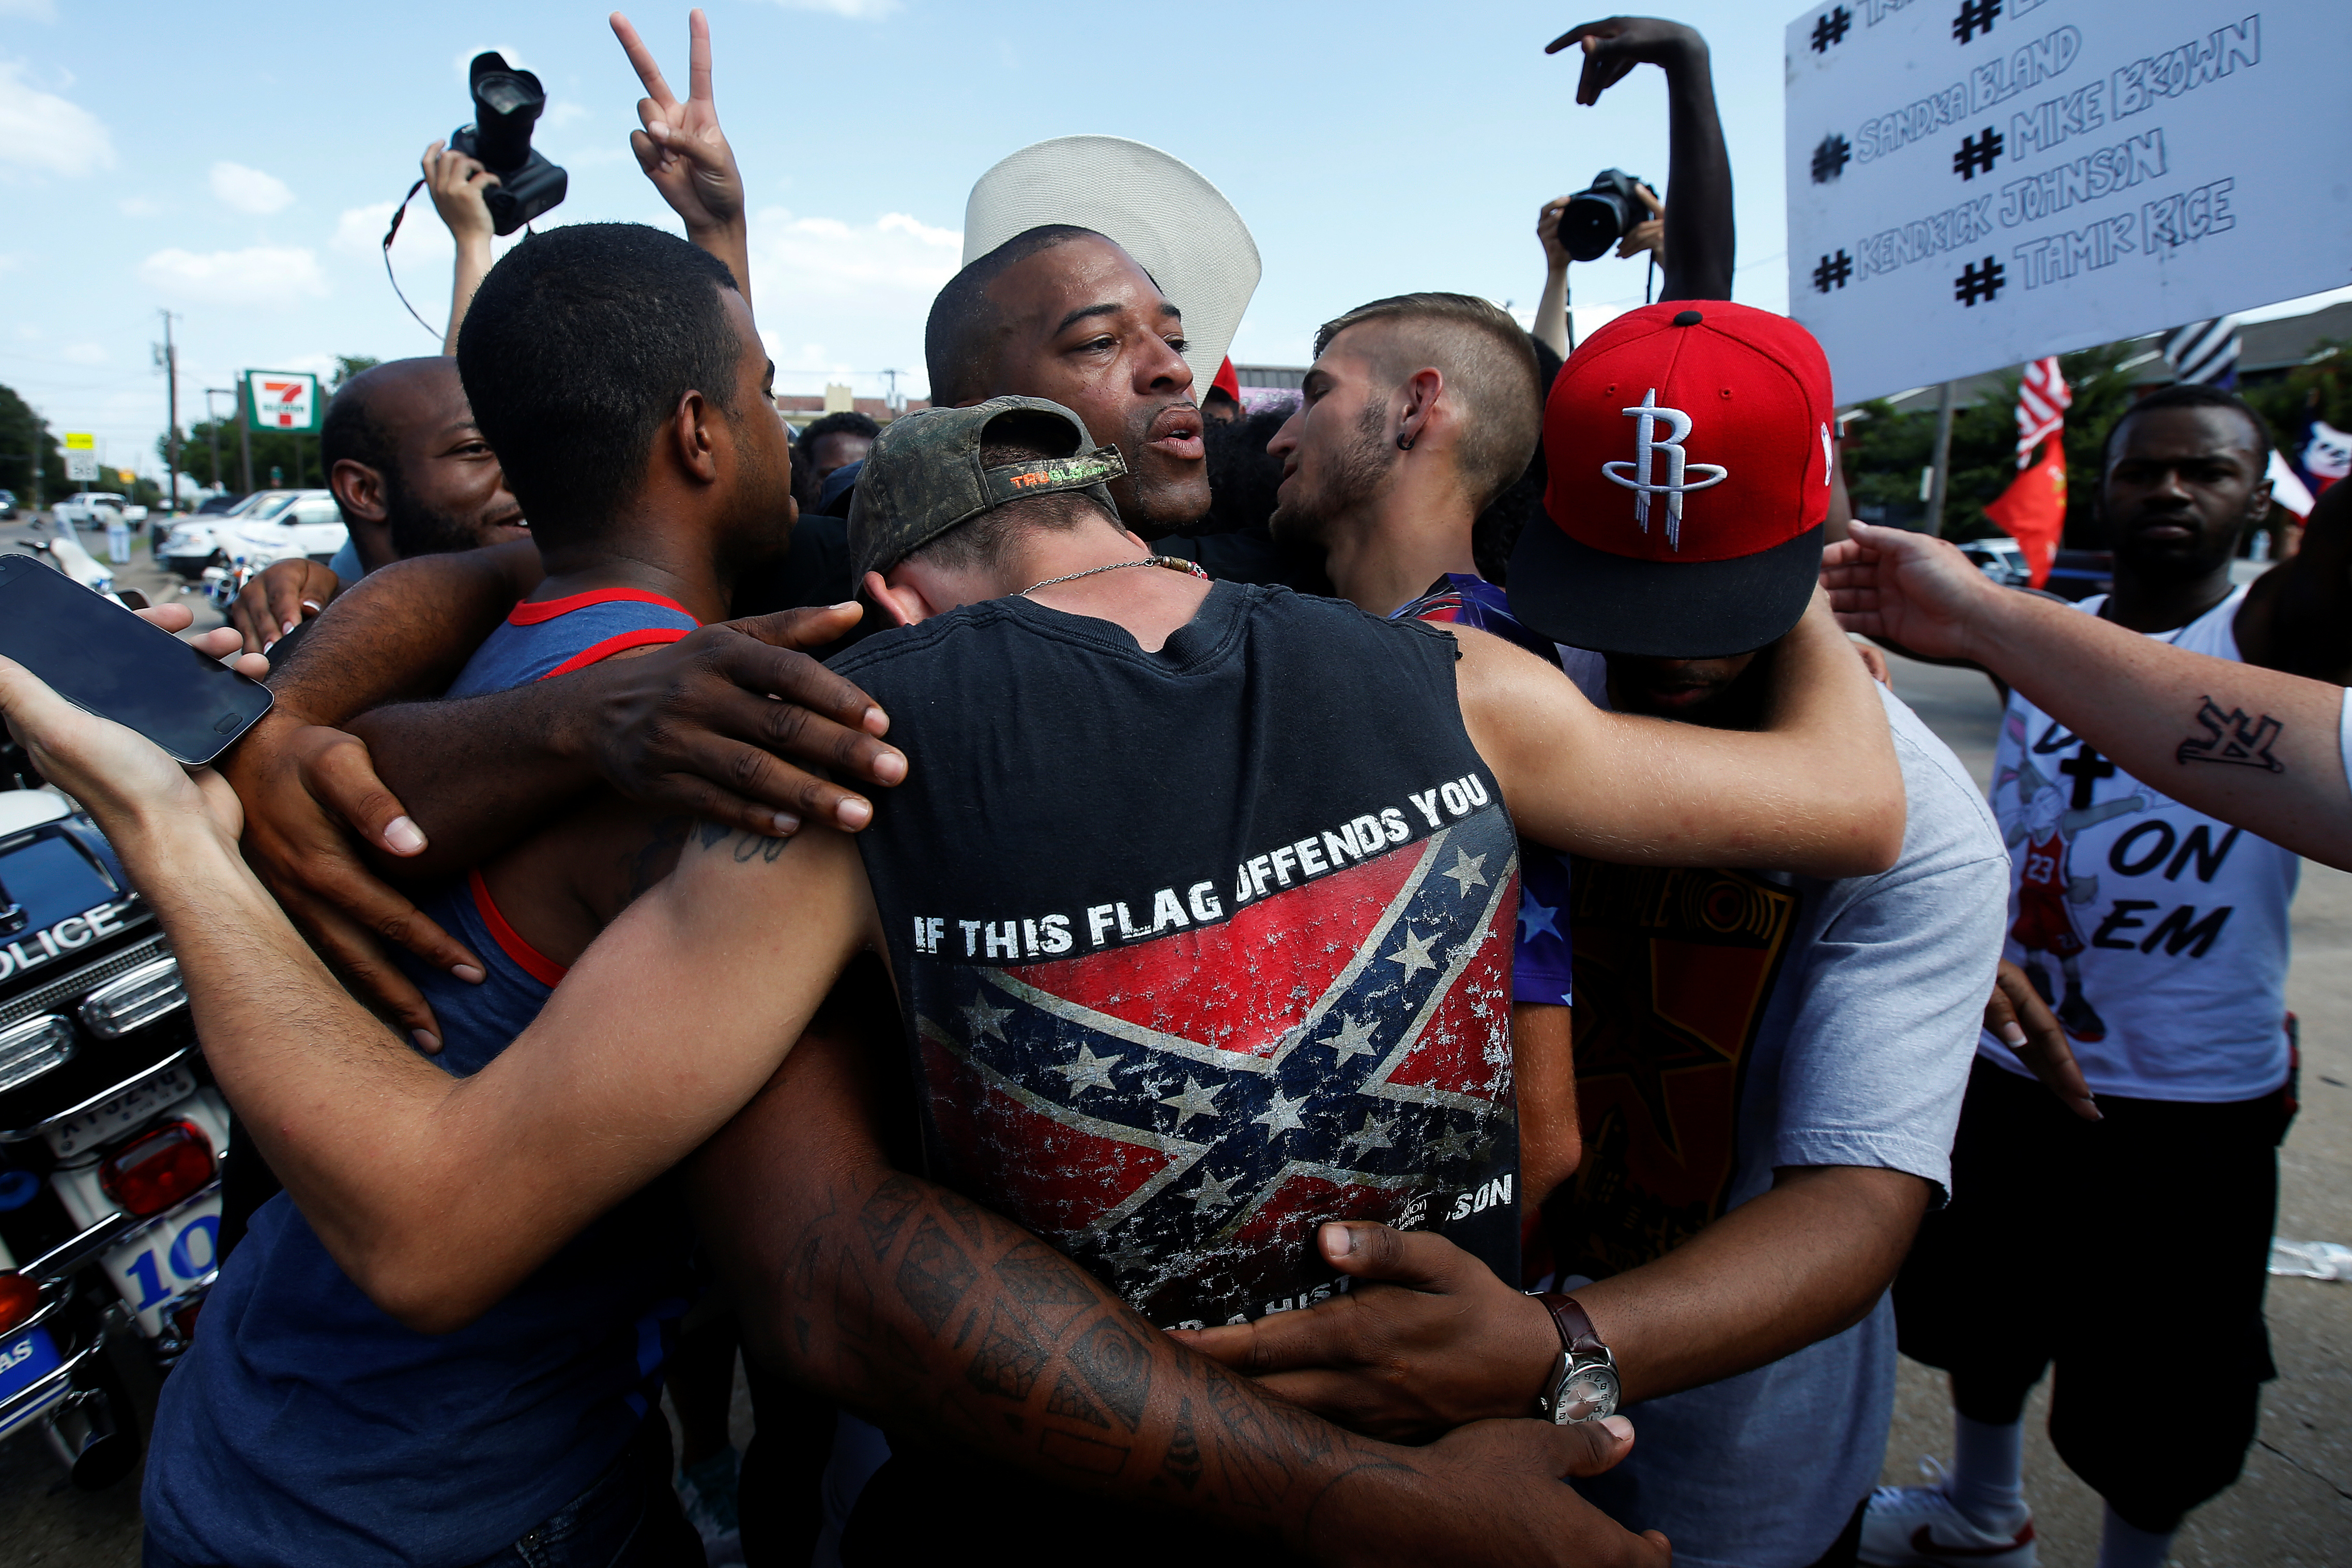 People, including a man wearing a T-shirt with a Confederate flag, hug in Dallas on July 10, 2016, following a Black Lives Matter rally protesting the multiple police shootings